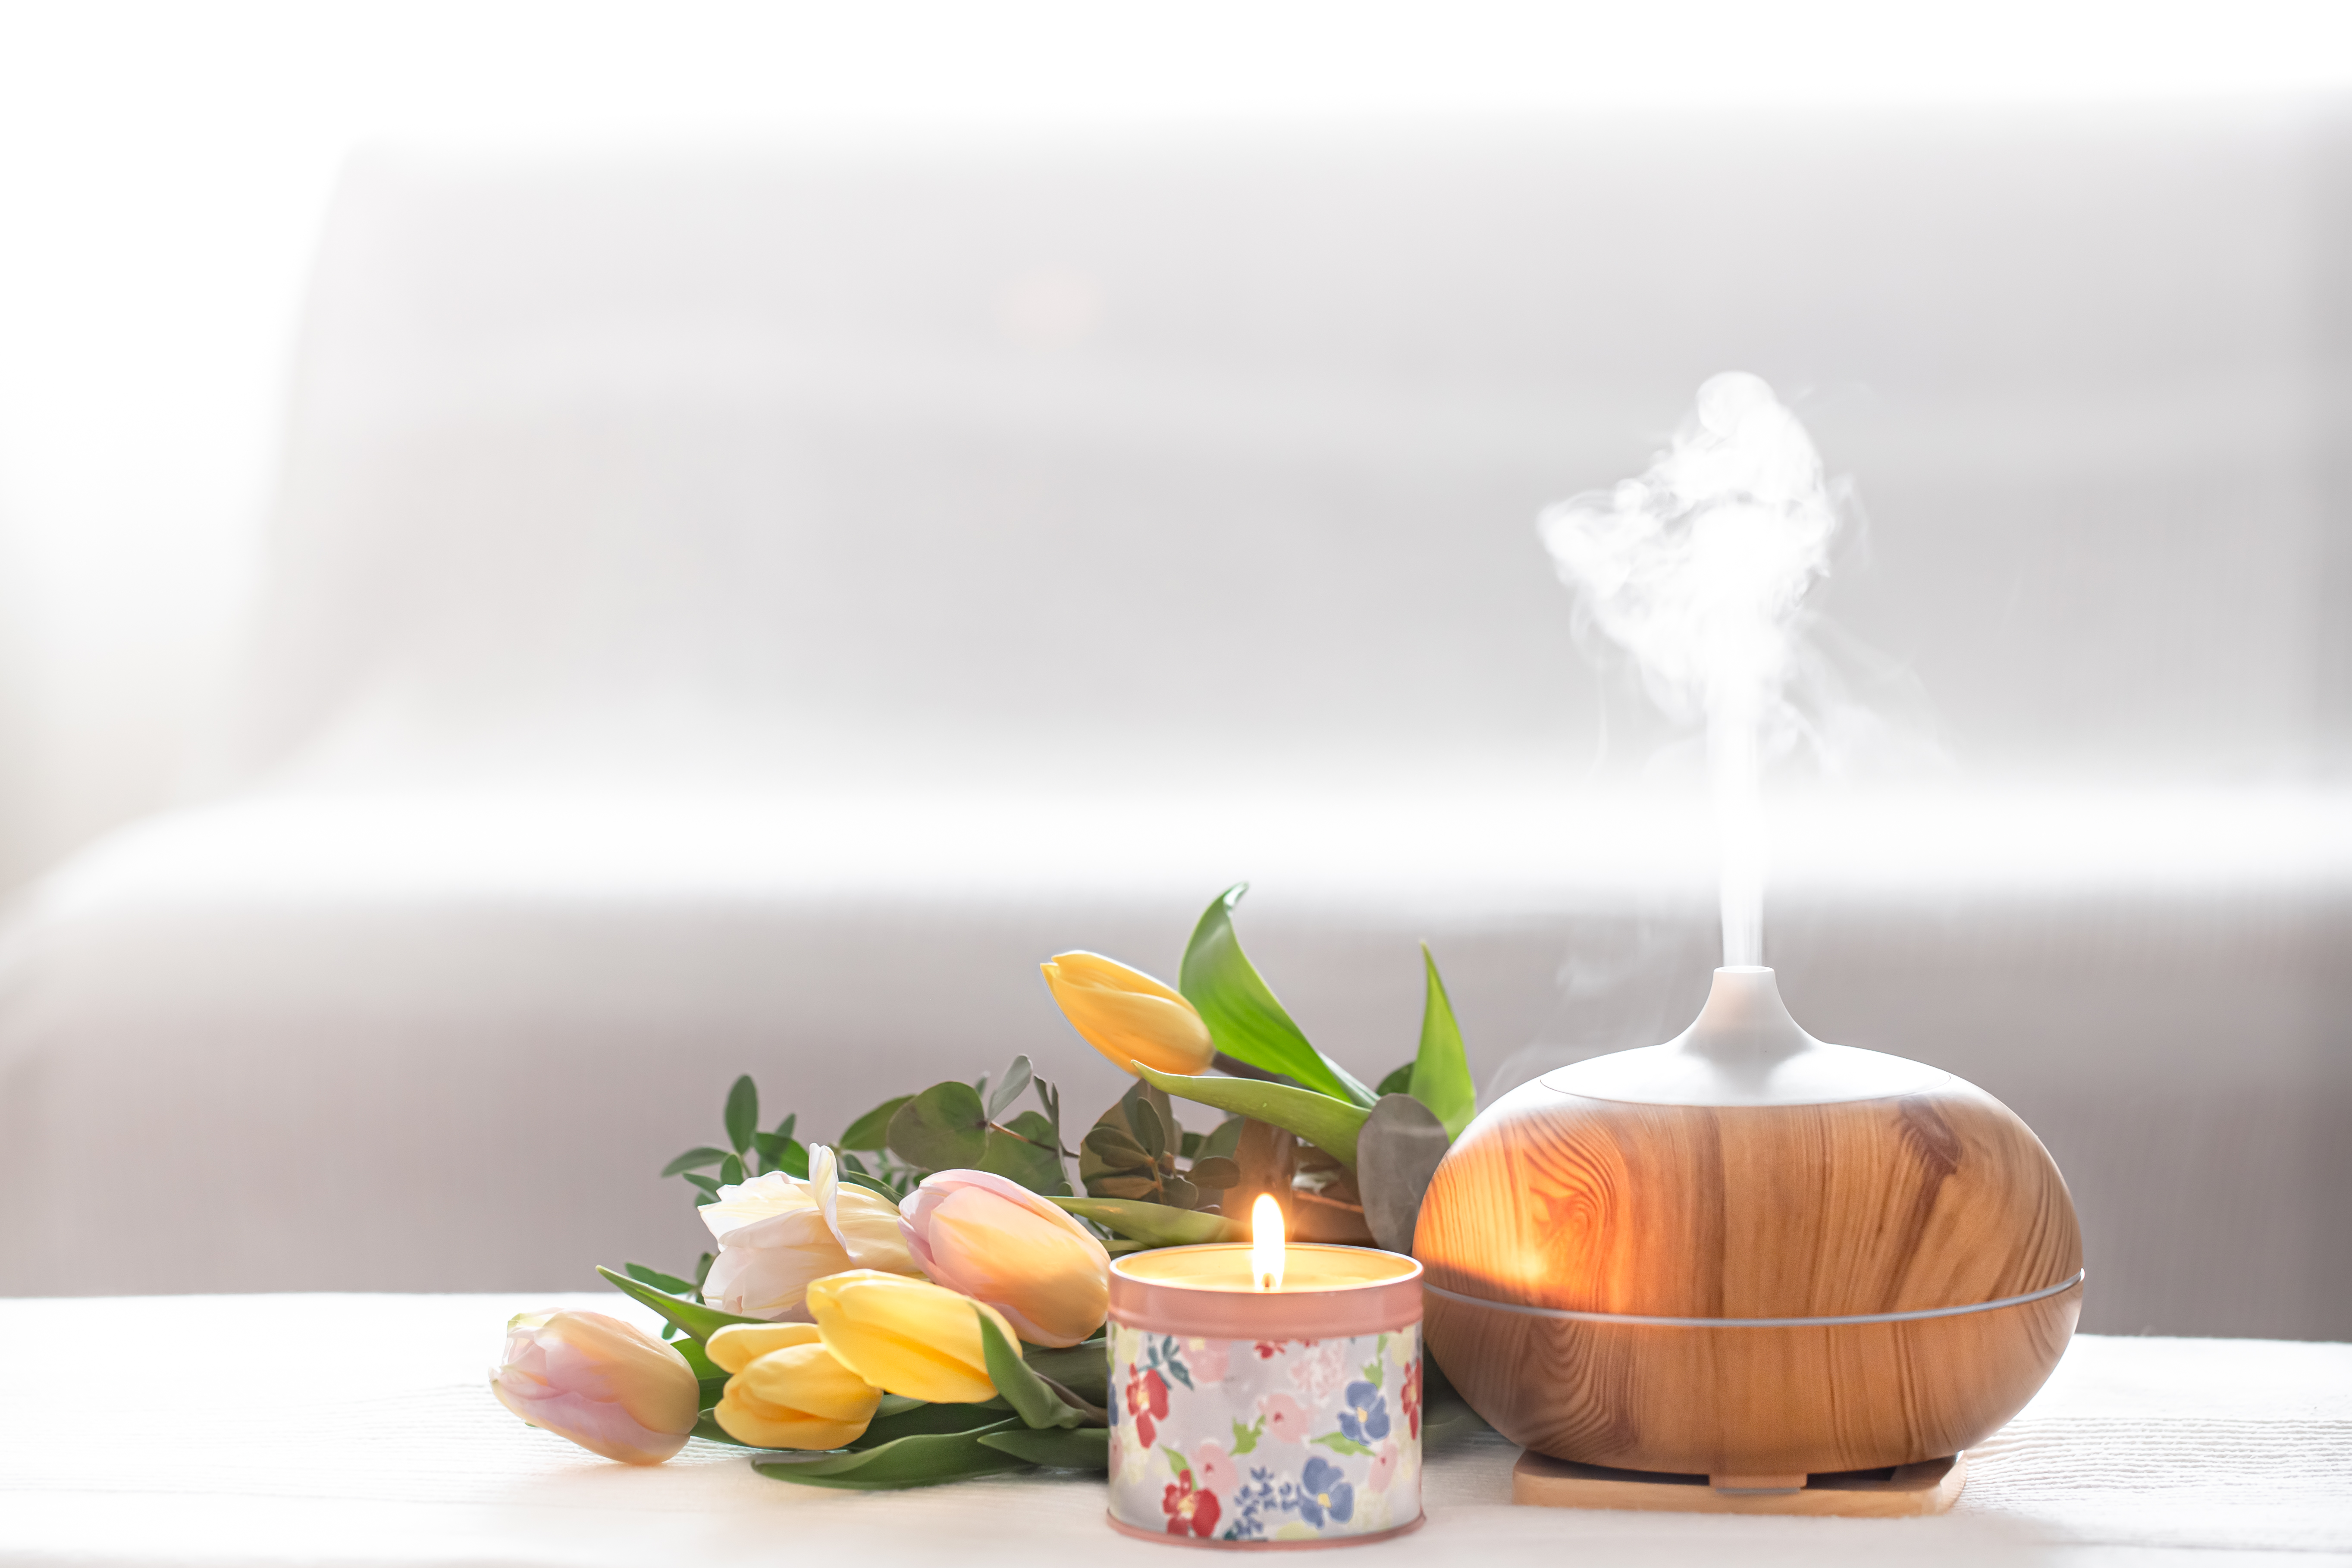 aromatherapy diffusers- inhealers - body lotions on a table